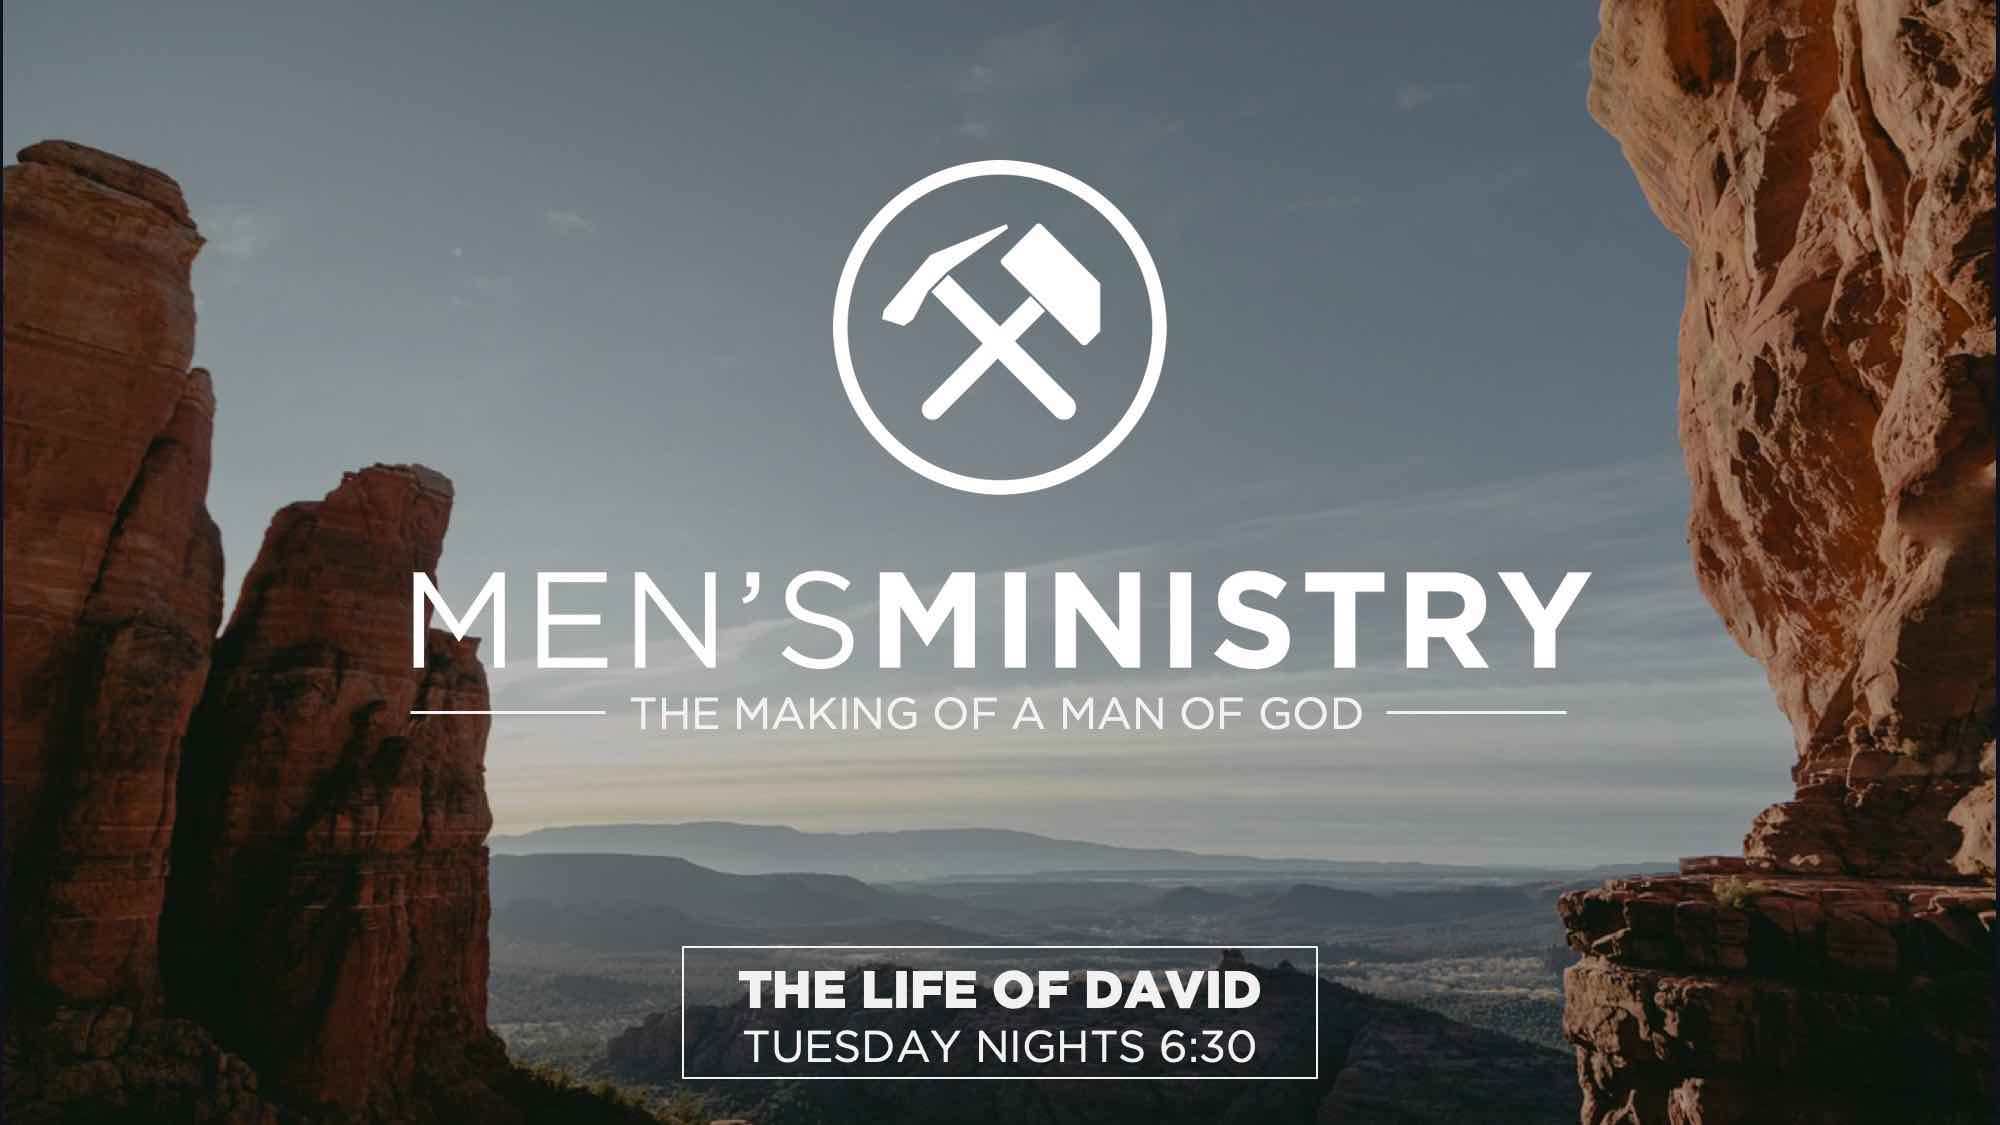 Men's Ministry in Carlsbad, Monday Night Football, College Football, Championship